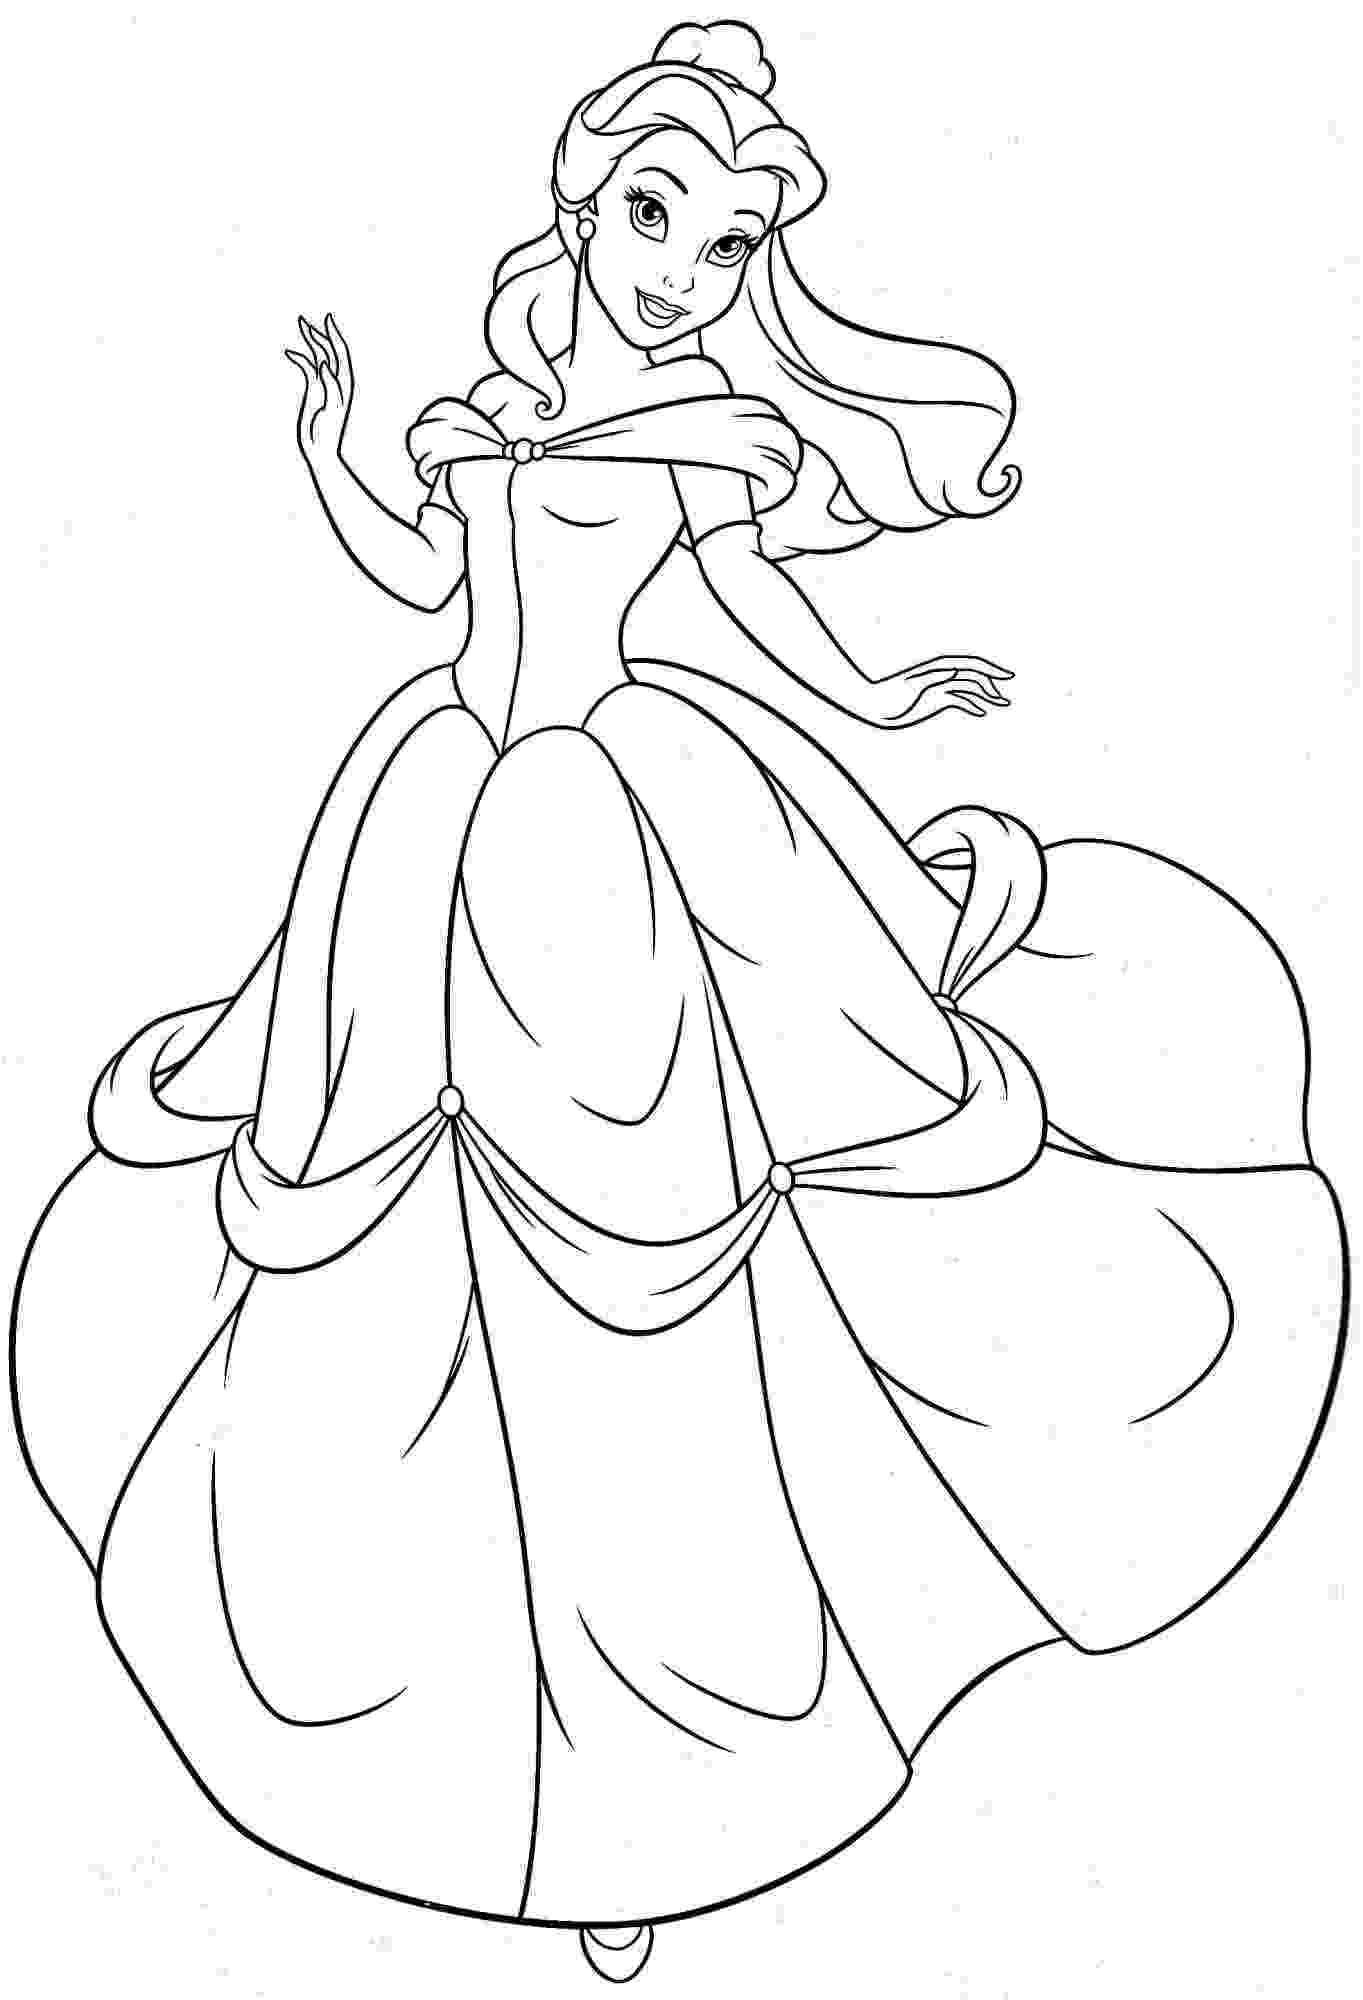 coloring pages princesses dancing princess coloring page free printable coloring pages coloring pages princesses